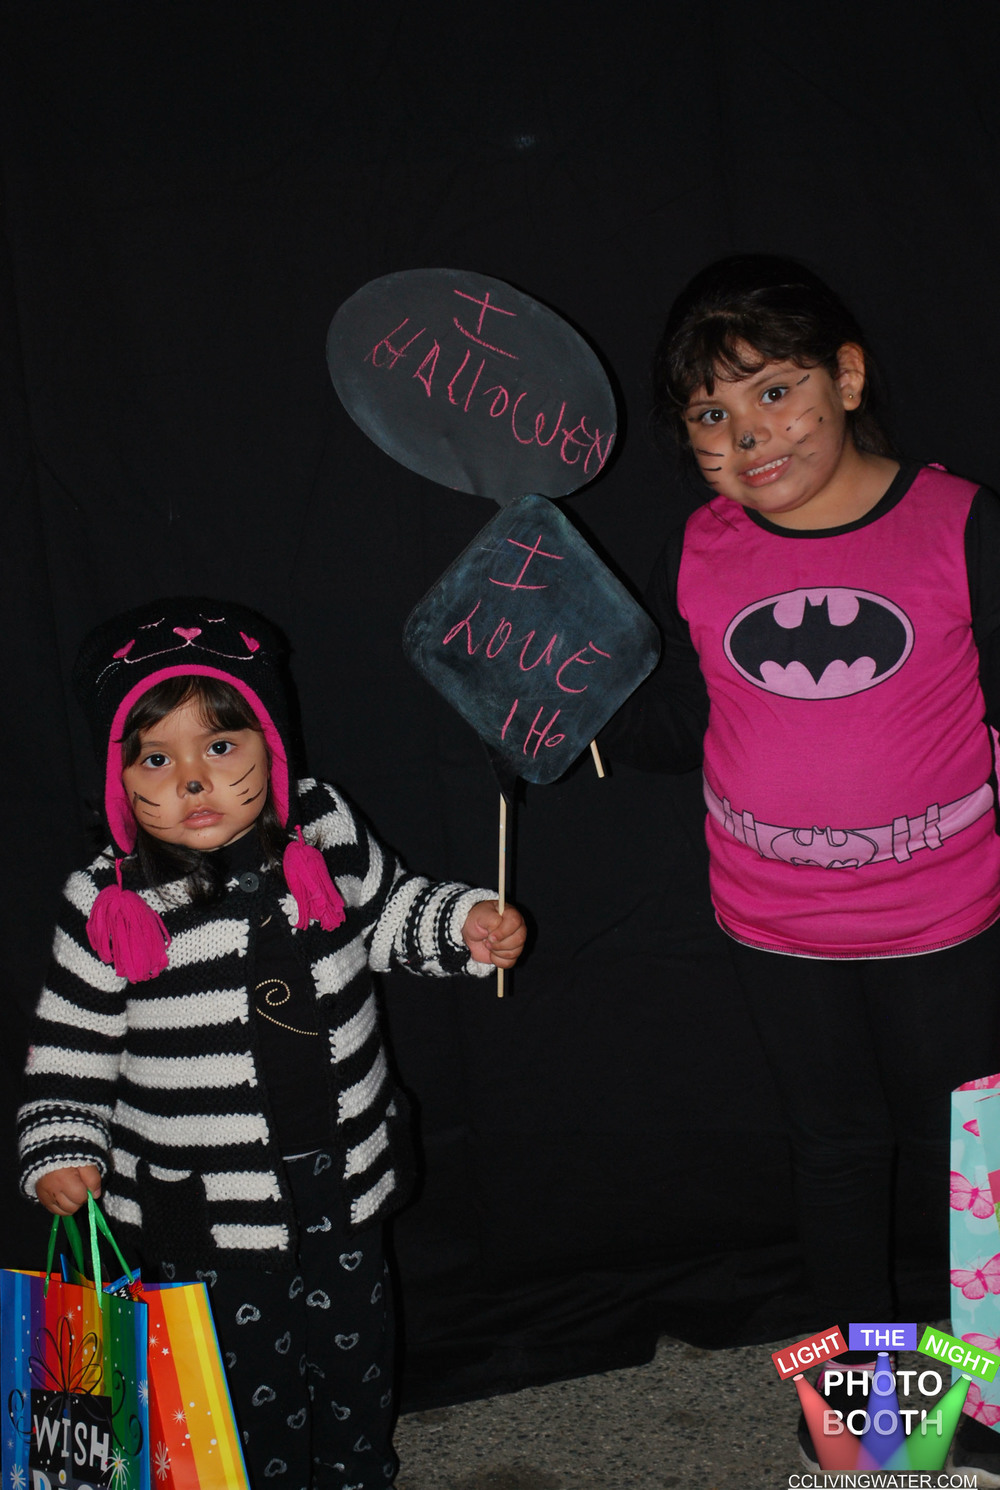 2014-10 - Light The Night Photo Booth (57) copy.jpg